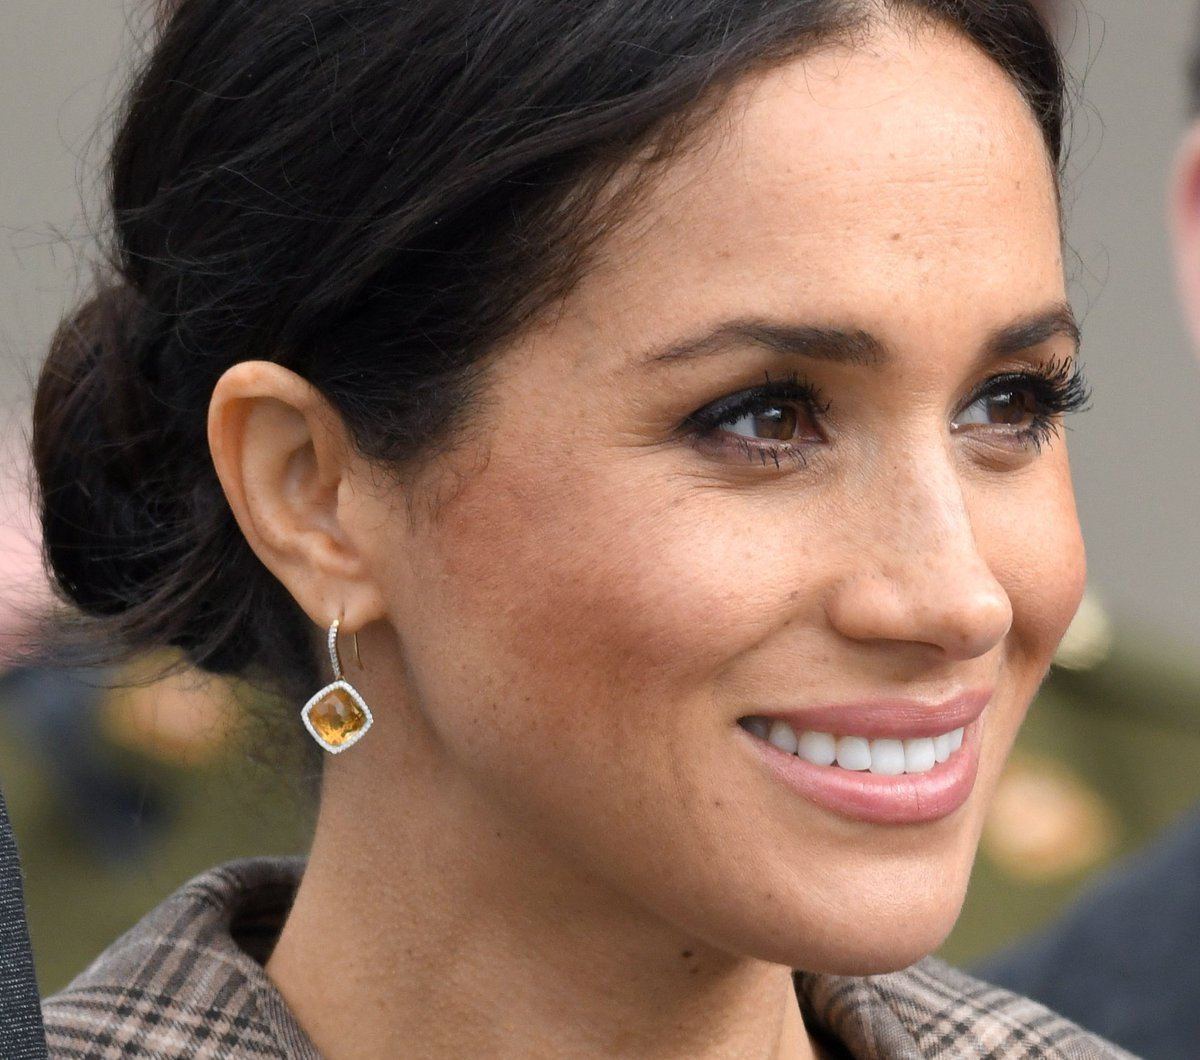 """With fame comes opportunity..but it also includes responsibility – to advocate and share, to focus less on glass slippers and more on pushing through glass ceilings and, if I'm lucky enough, then to inspire."""" - Meghan, The Duchess of Sussex #WednesdayWisdom pic.twitter.com/QUPl8fxthP"""